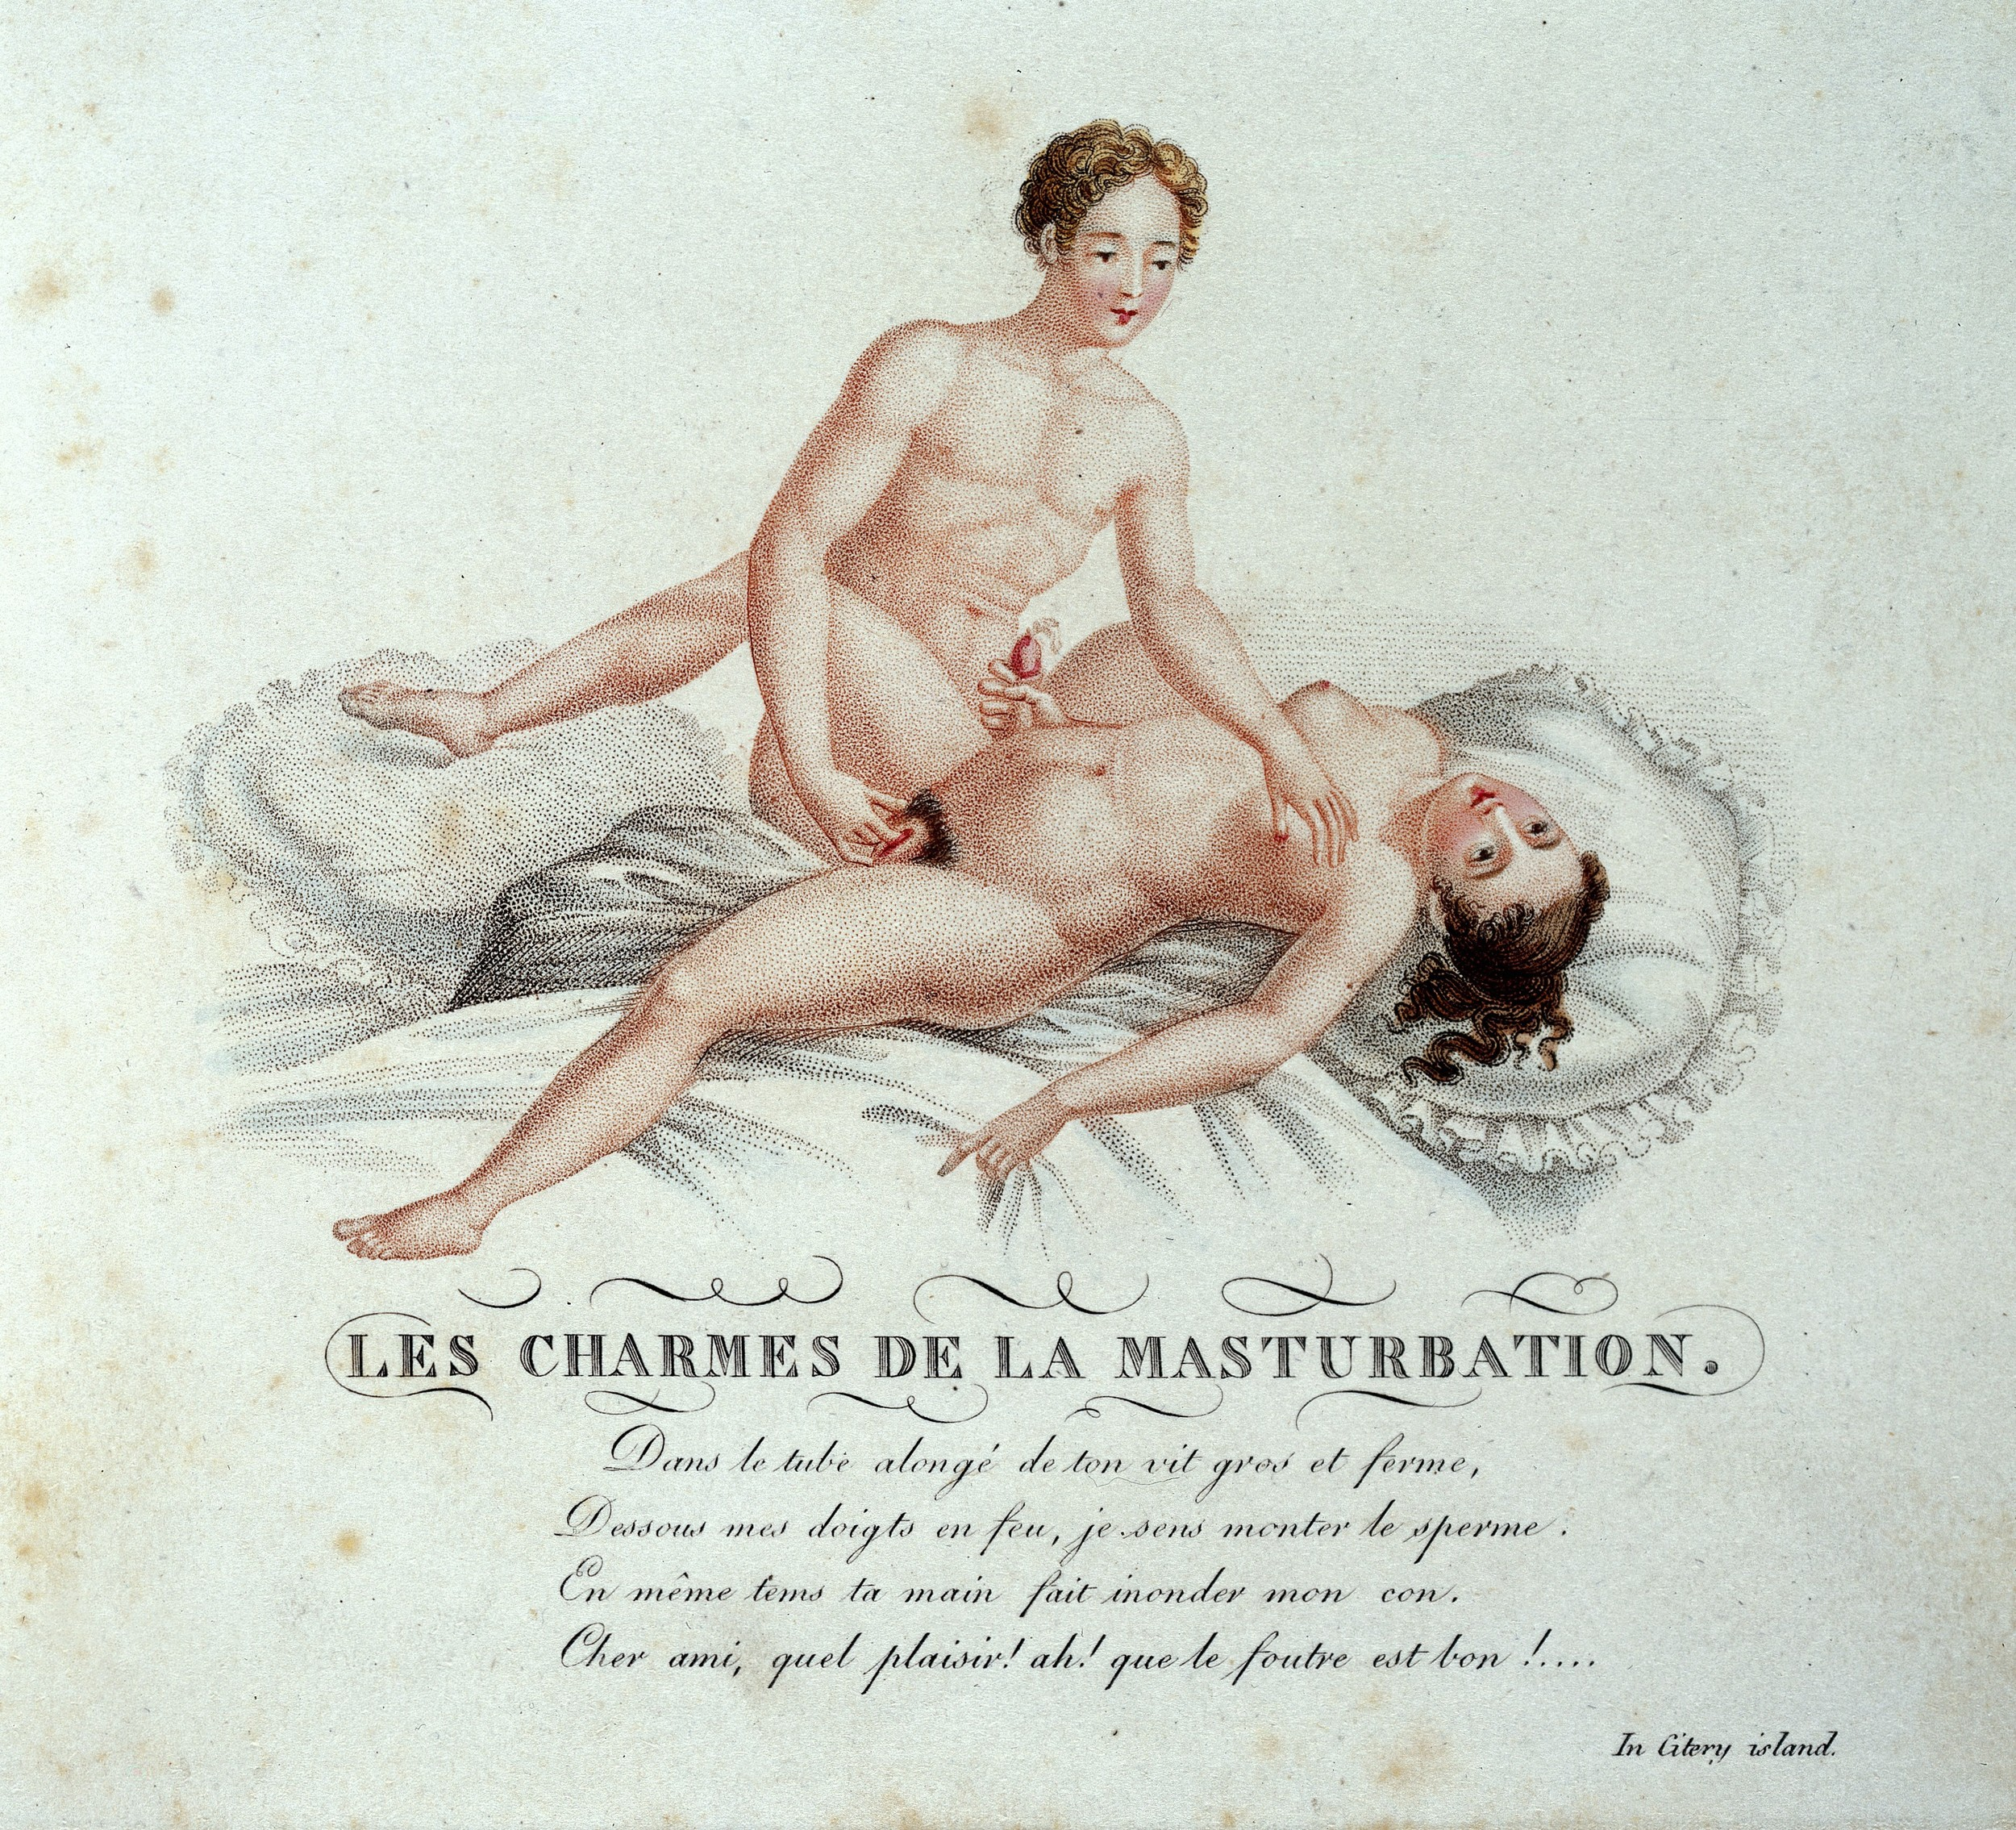 'Les charmes de la masturbation' Page from 'Invocation a l'amour, chant philosophique' (by 'A virtuoso of the good fashion') London, 1825 ©Wellcome Library, London